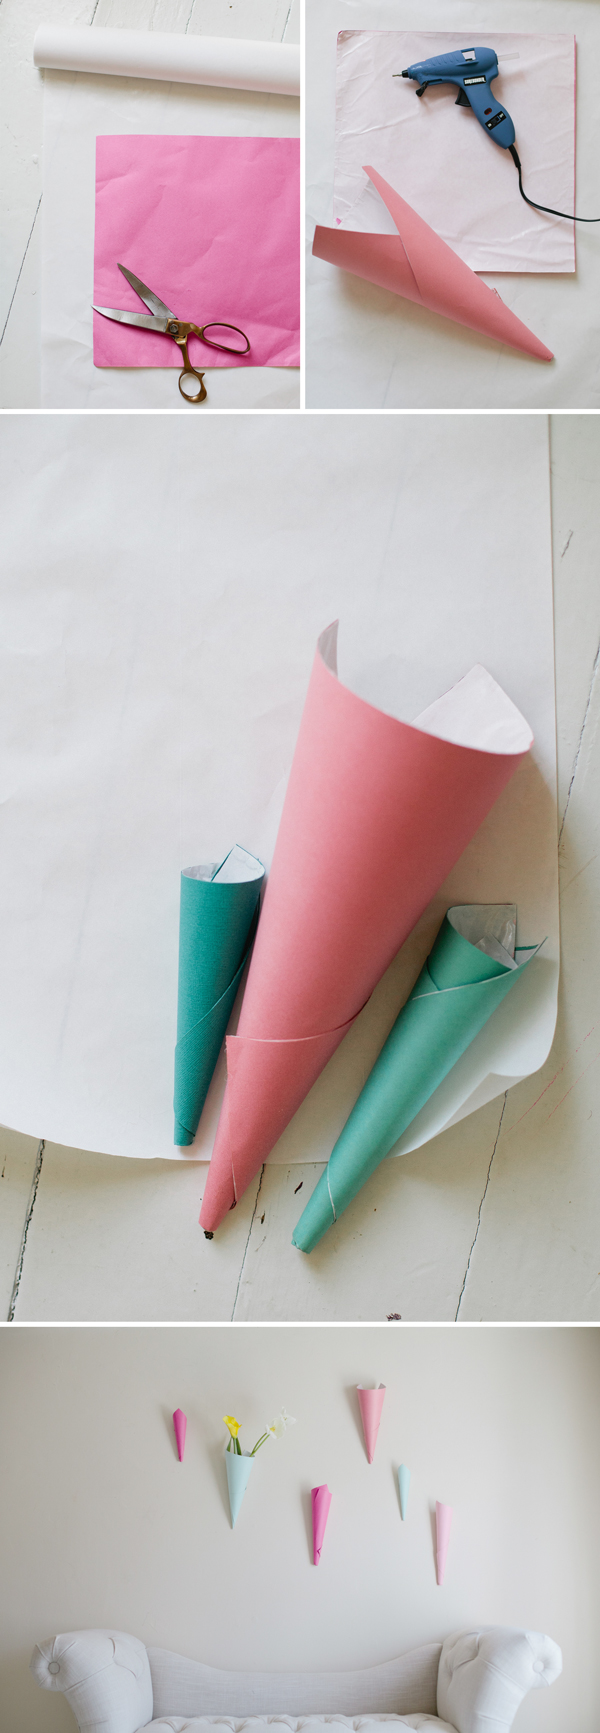 Paper floral wall cones a subtle revelry paper floral wall cones paper floral wall cones a subtle revelry mightylinksfo